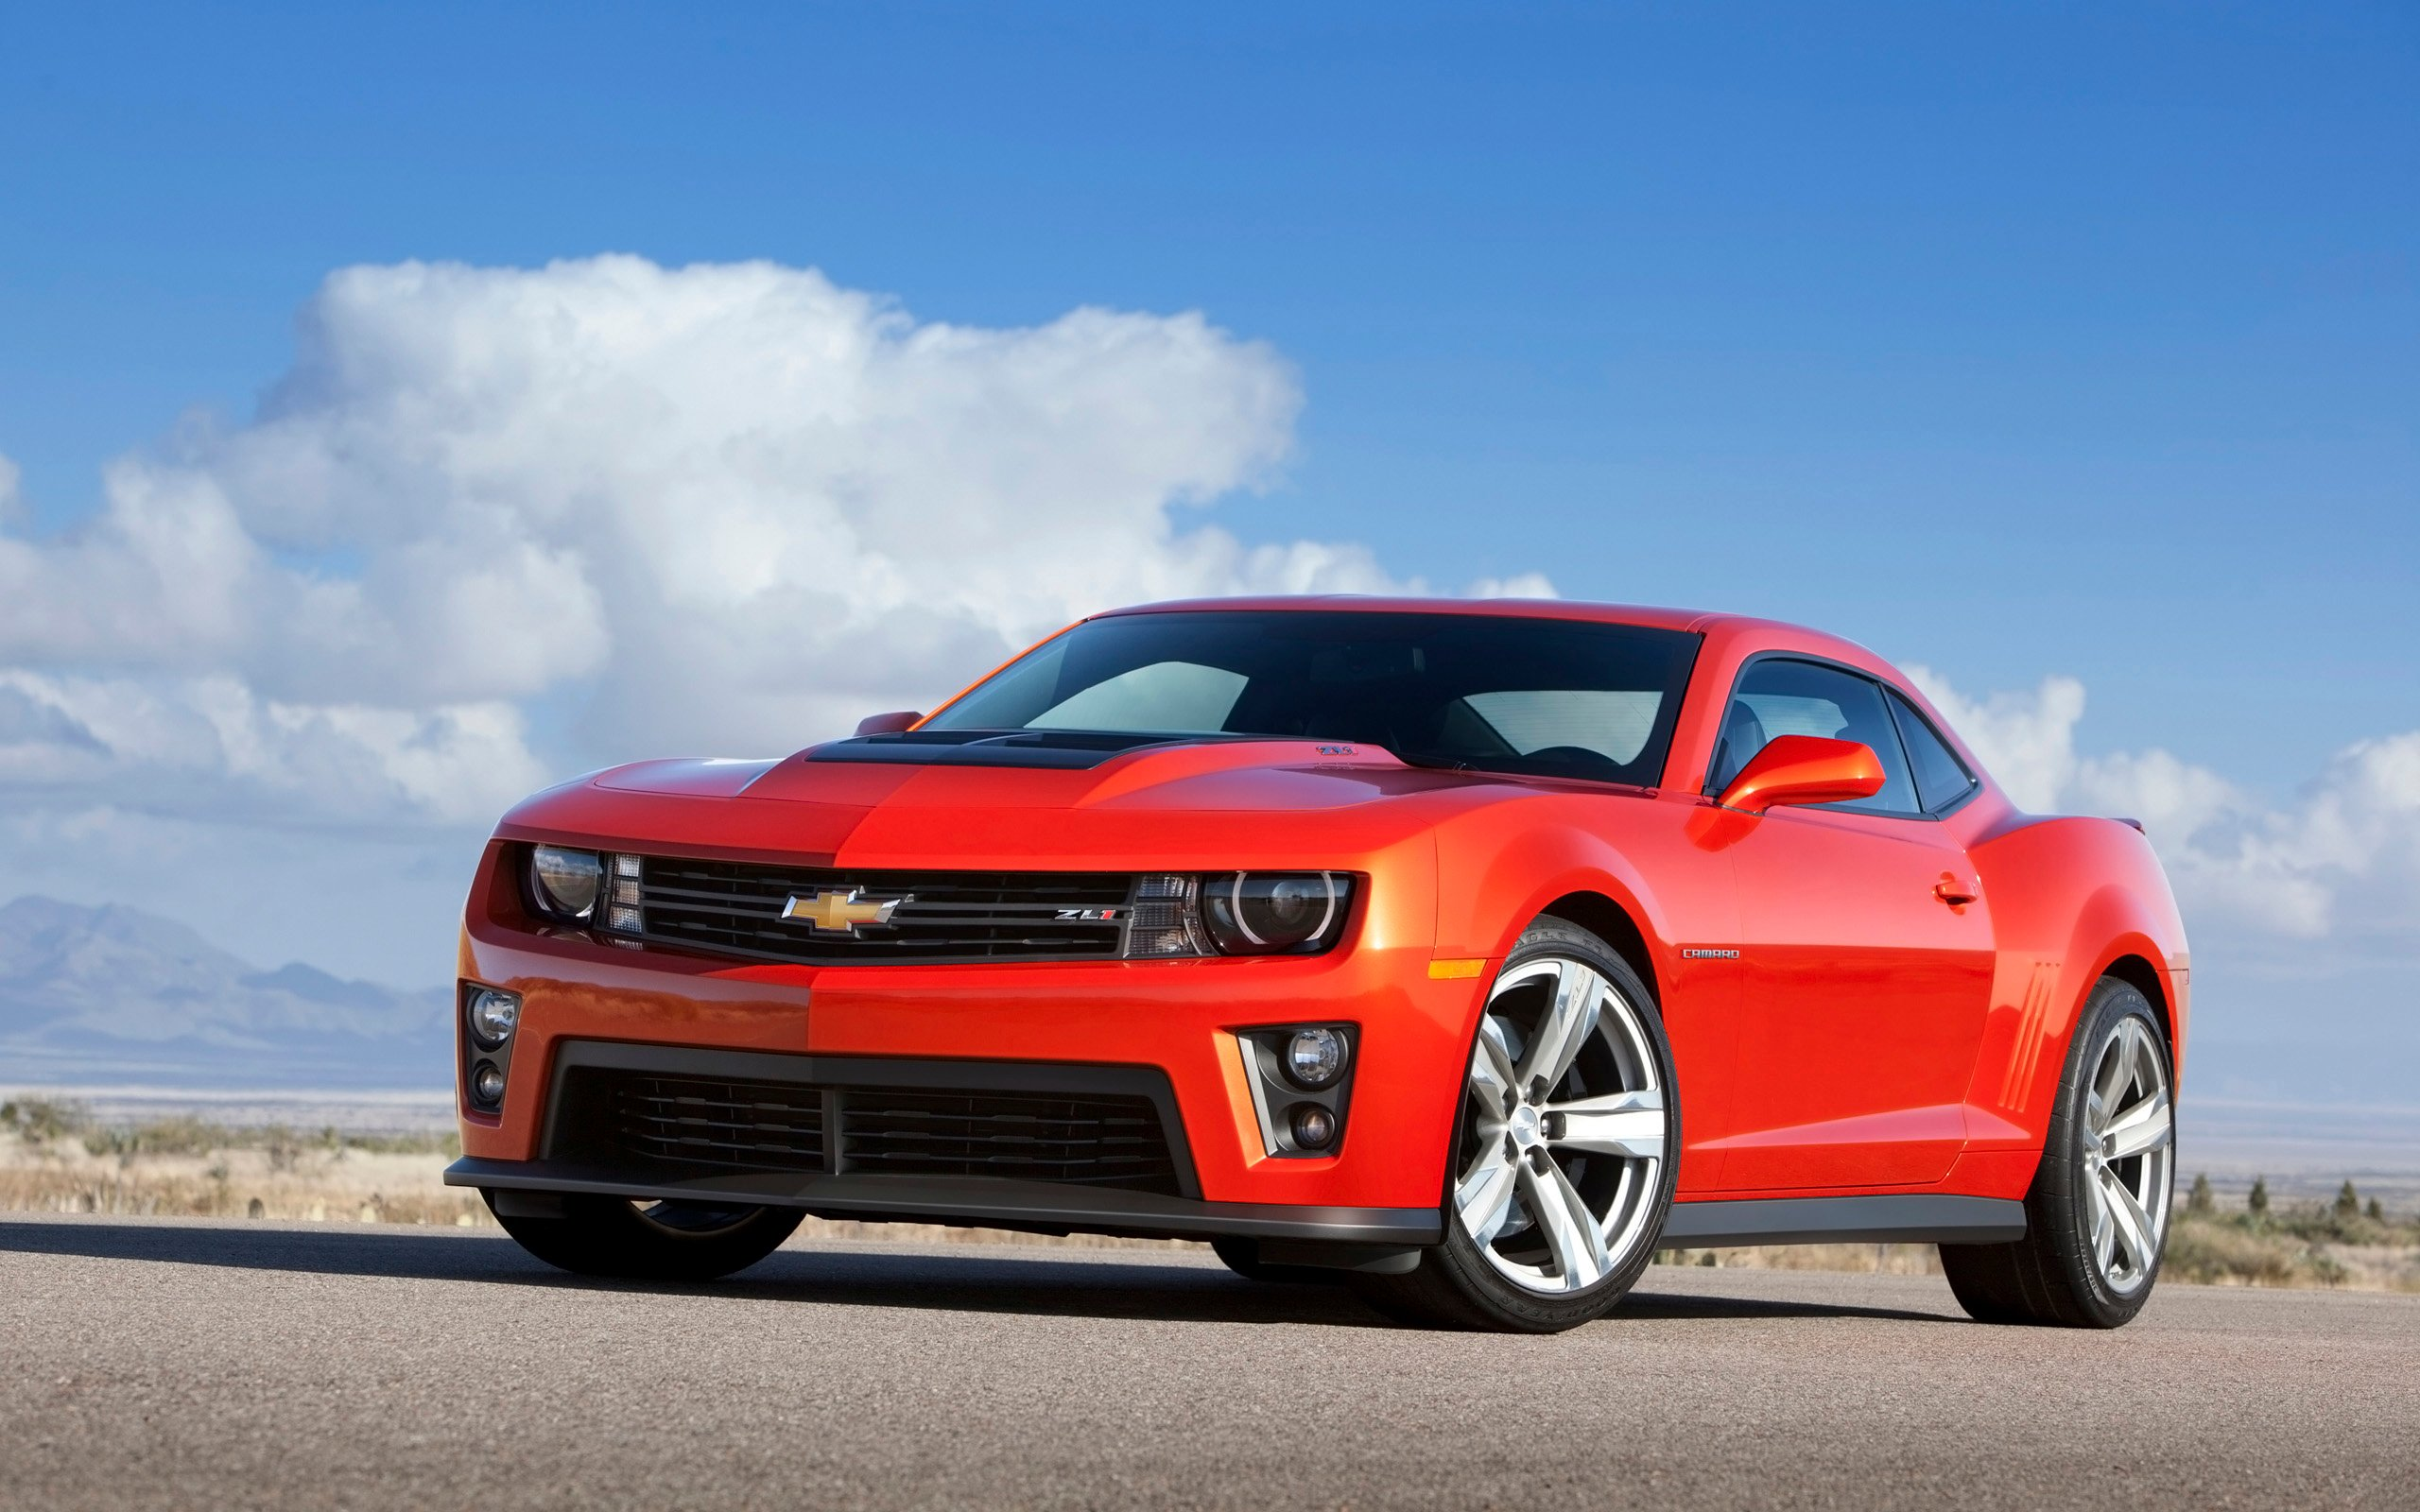 2014 Chevrolet Camaro ZL1 Coupe Wallpaper HD Car Wallpapers 2560x1600